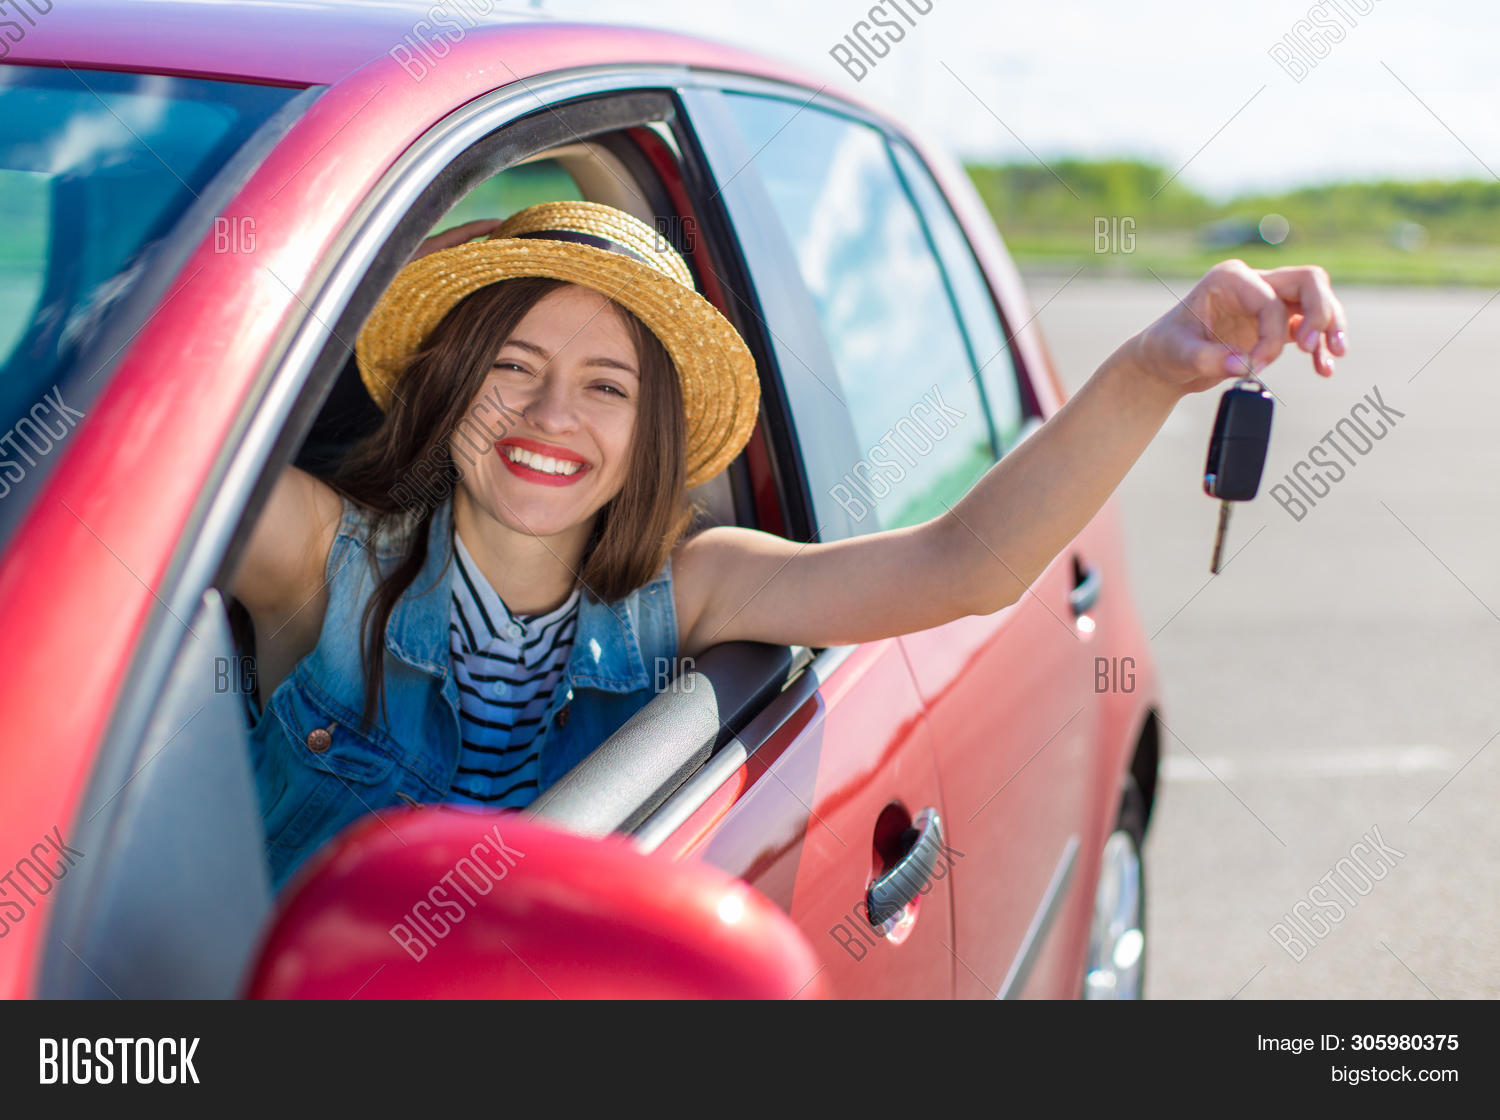 adult,attractive,auto,automobile,beautiful,business,car,caucasian,closeup,color,drive,driver,female,girl,hand,happy,holding,human,key,license,modern,new,outdoor,owner,people,person,portrait,pretty,purchase,red,rental,sale,showing,smile,transport,transportation,travel,vehicle,woman,young